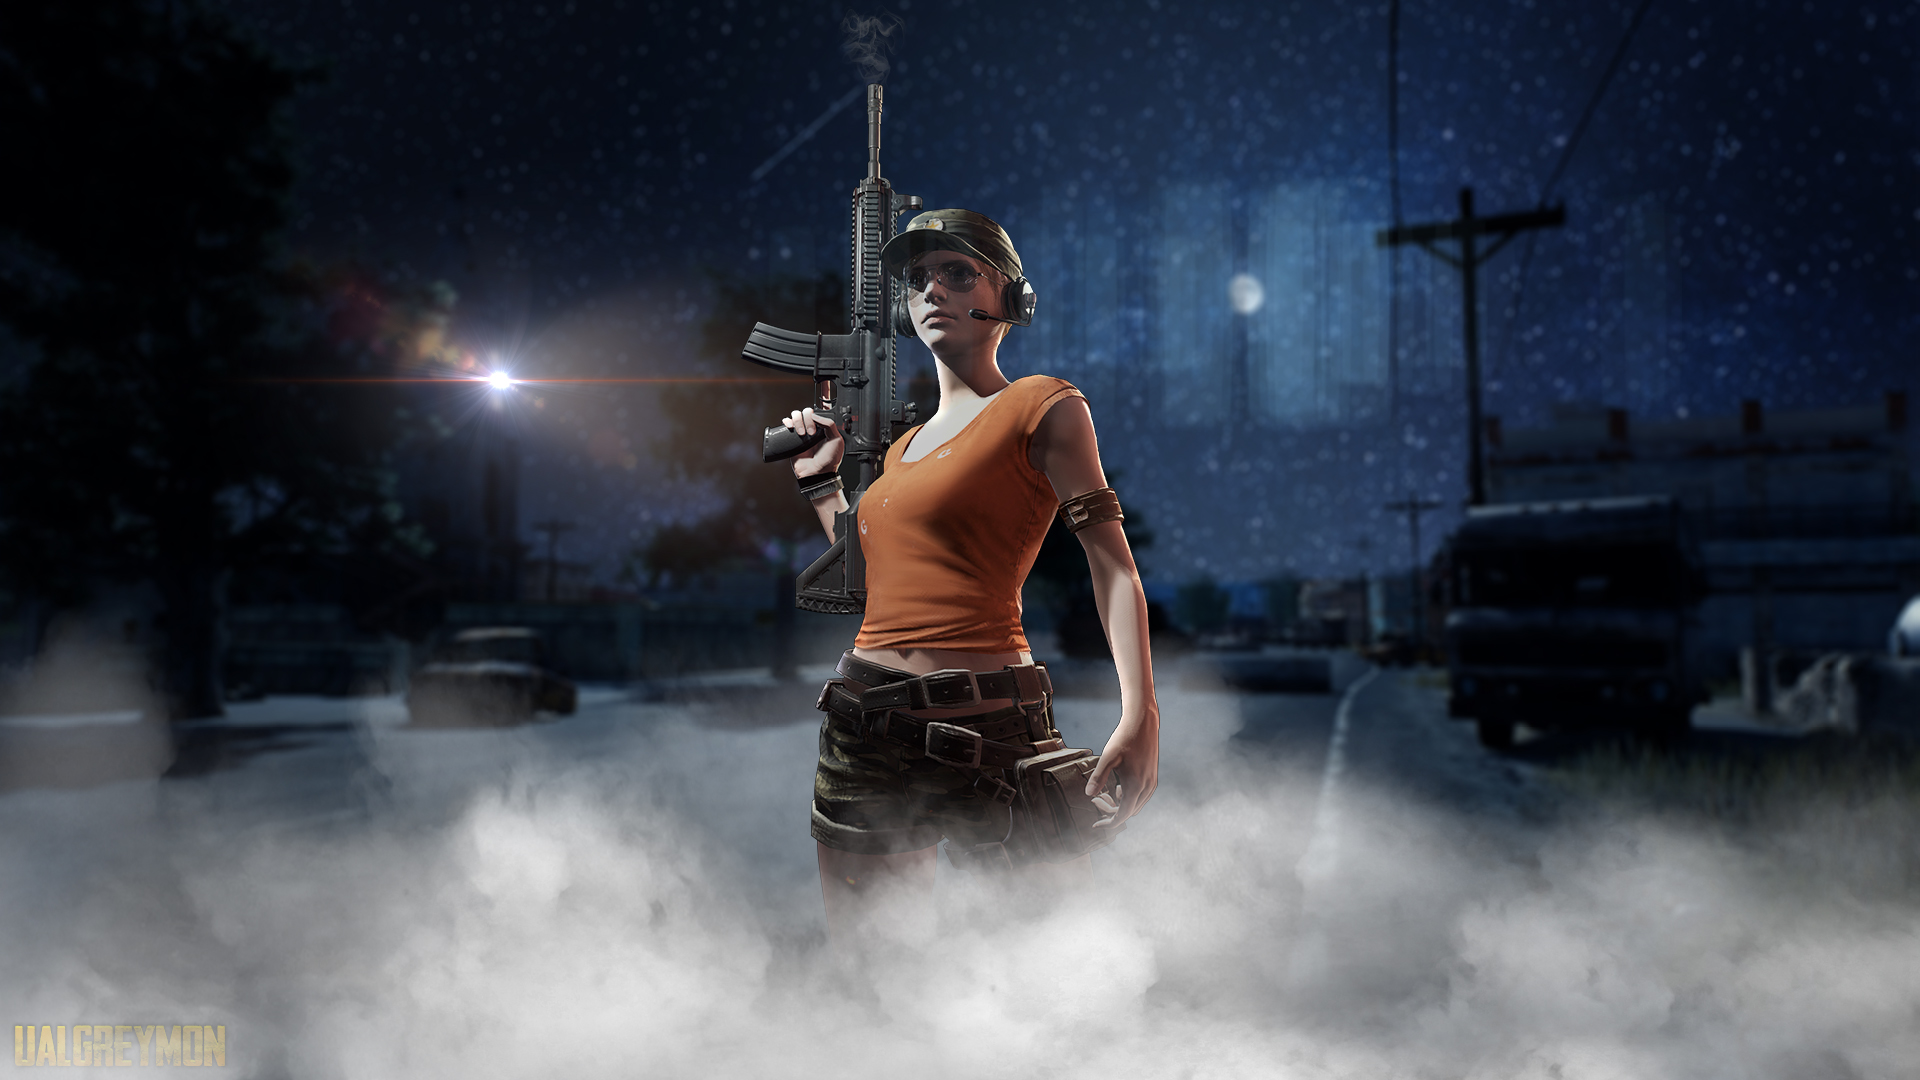 Pubg Artwork Wallpapers: Pubg Night, HD Games, 4k Wallpapers, Images, Backgrounds